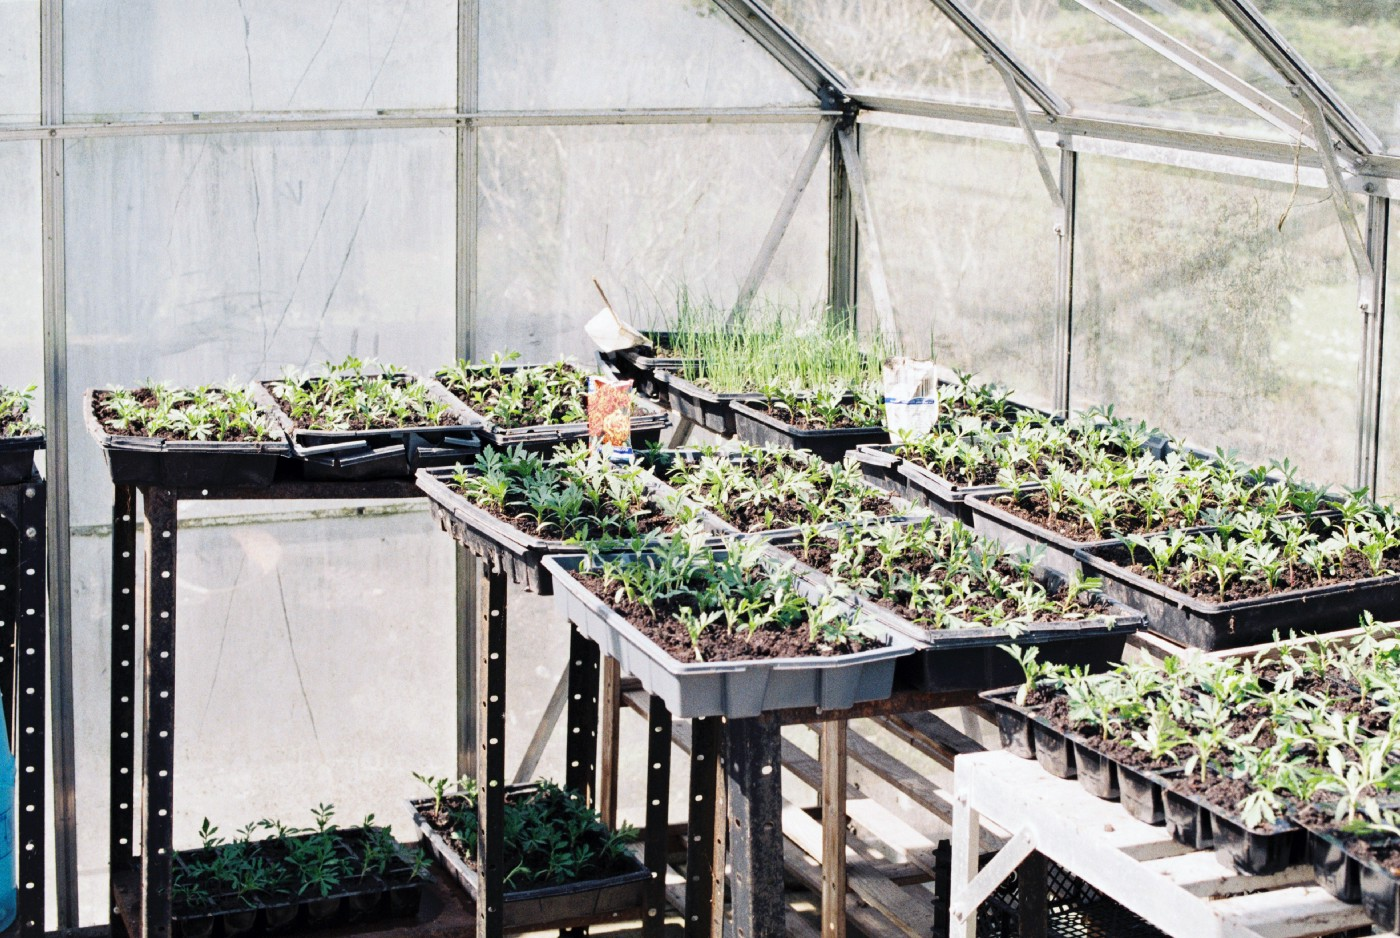 A photo of some seed-starting trays in a greenhouse.